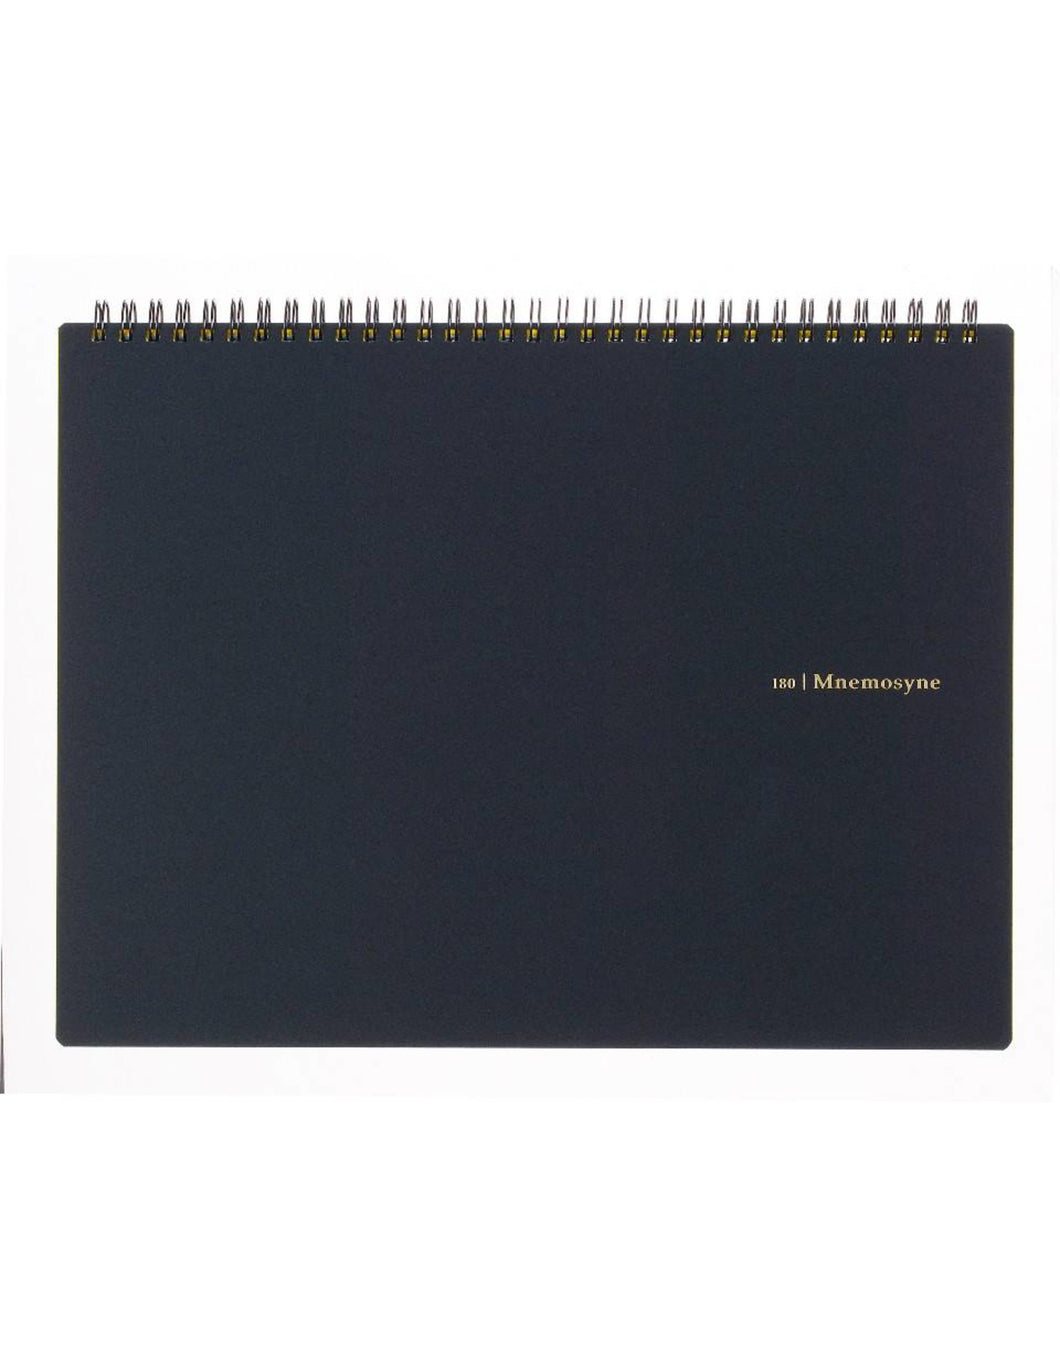 Maruman Mnemosyne A4 Horizontal Notepad (5mm squared)